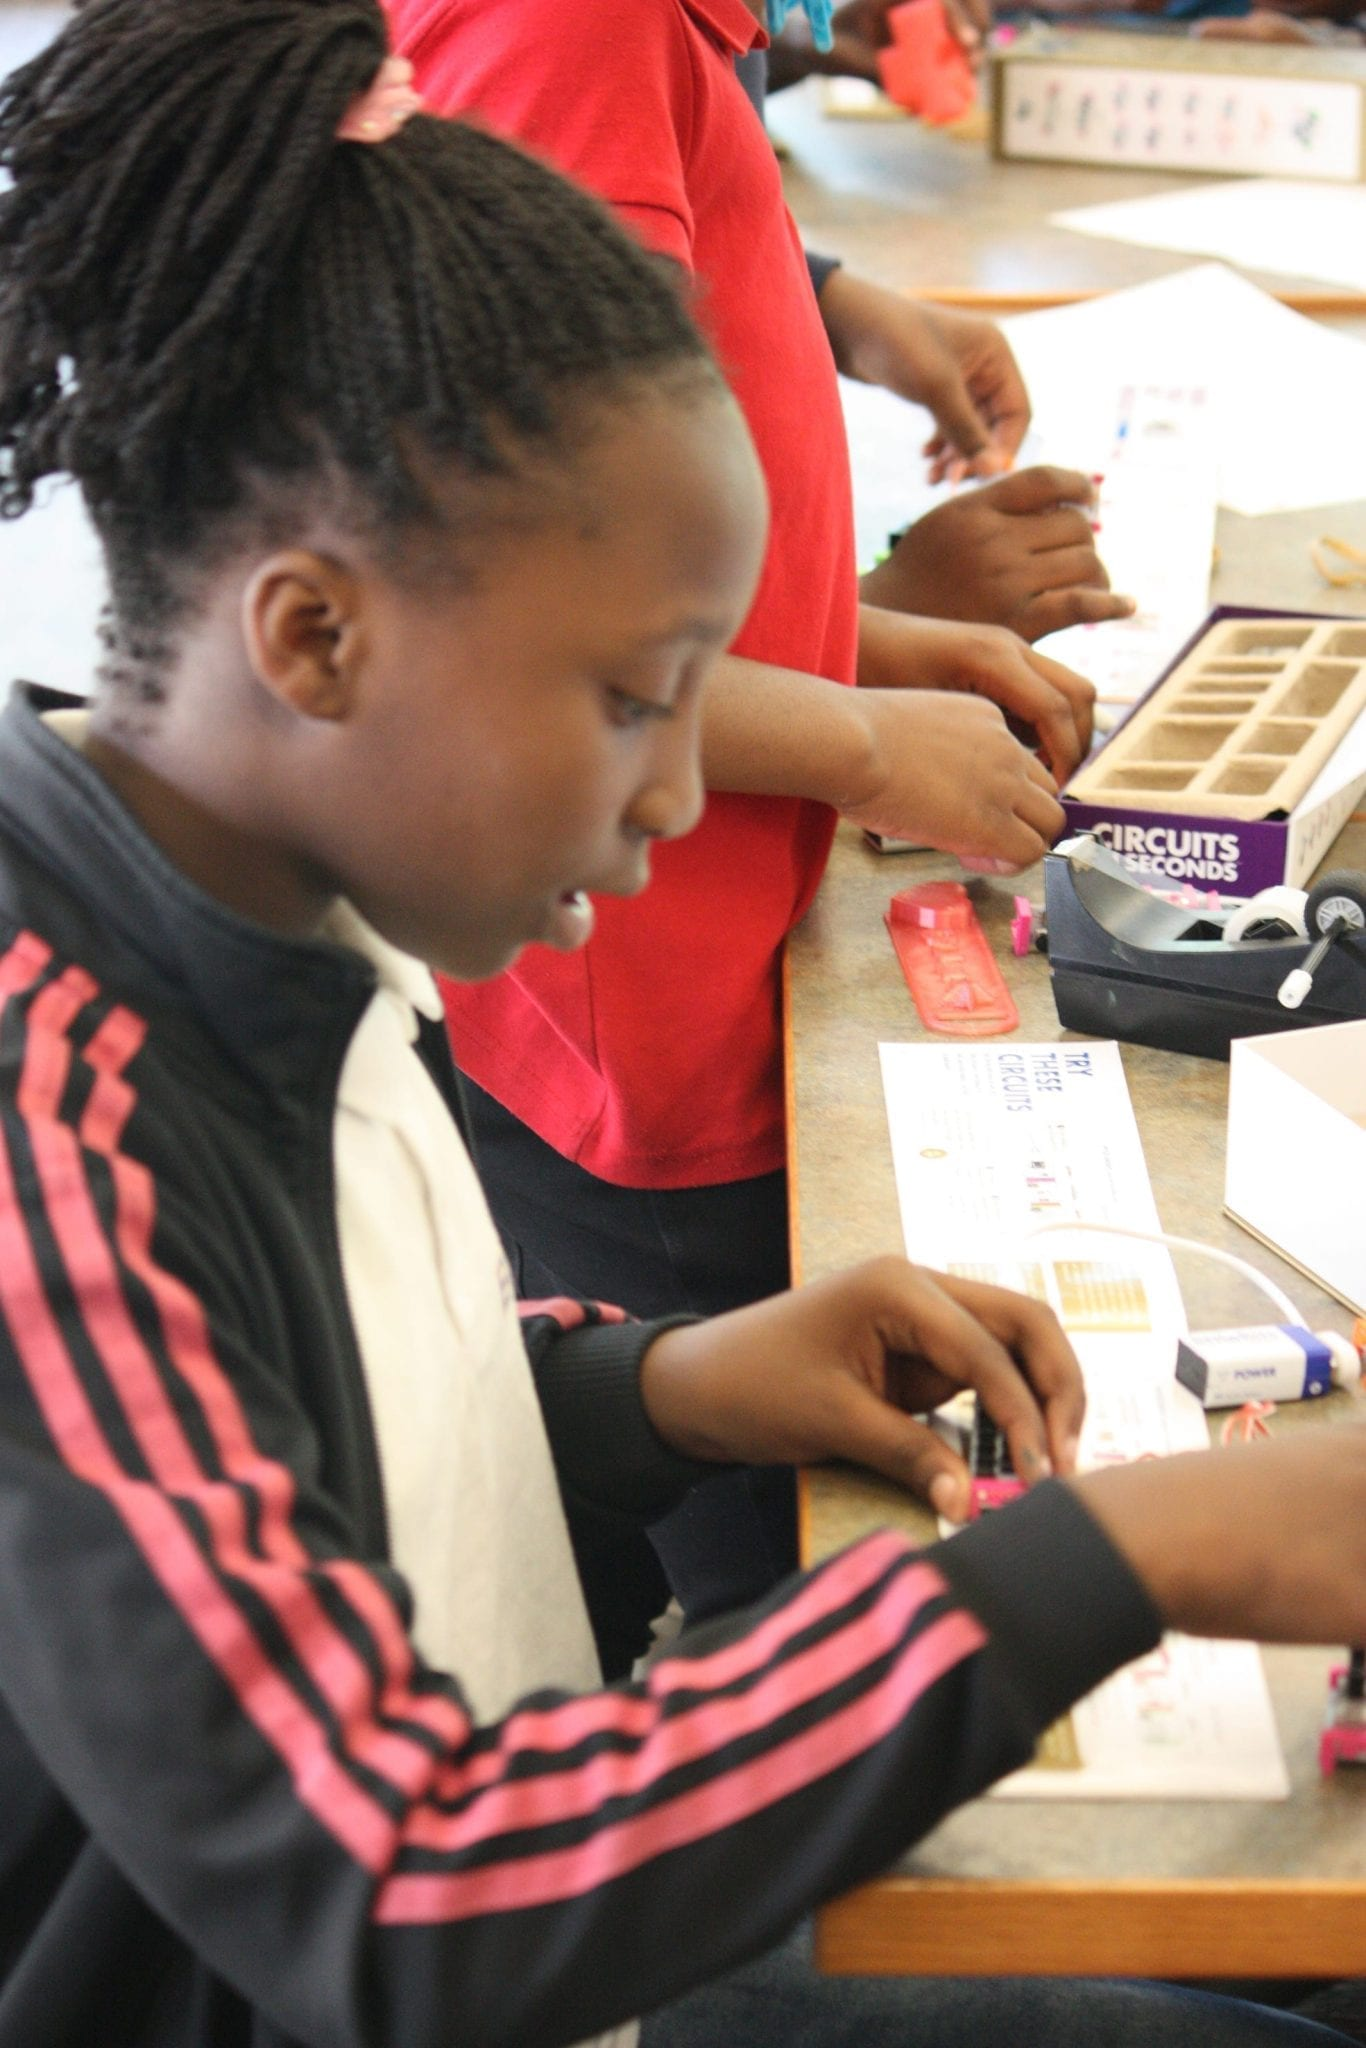 Fun with Circuits - Hillsborough County Public Library